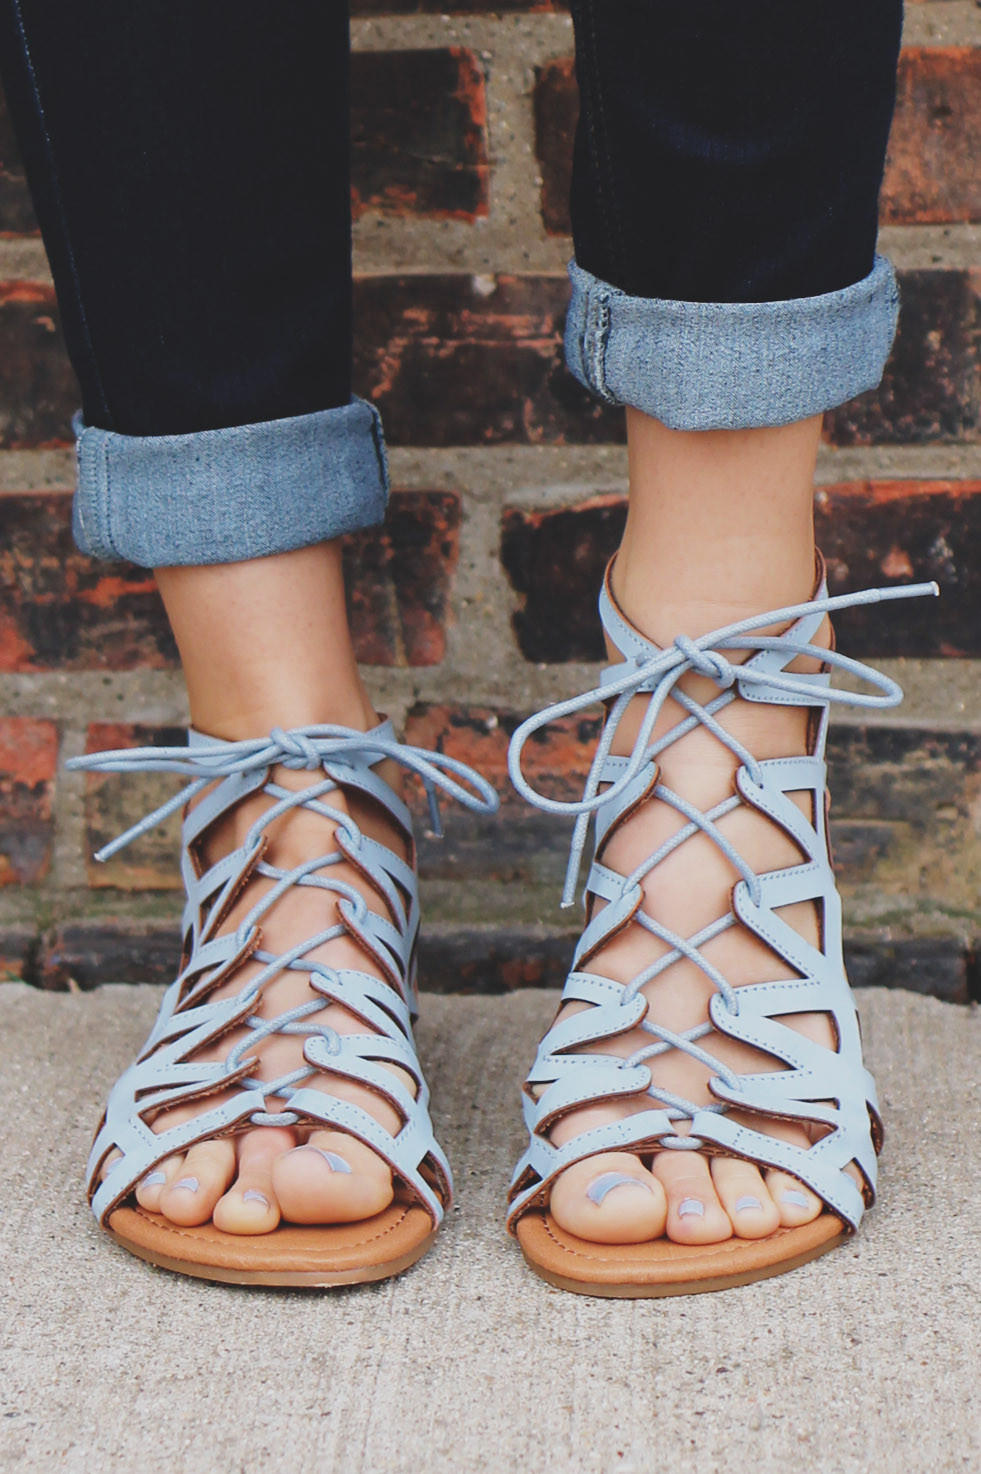 96a8e634b4c1 Femme Fatale Sandal - Baby Blue from UOI Boutique